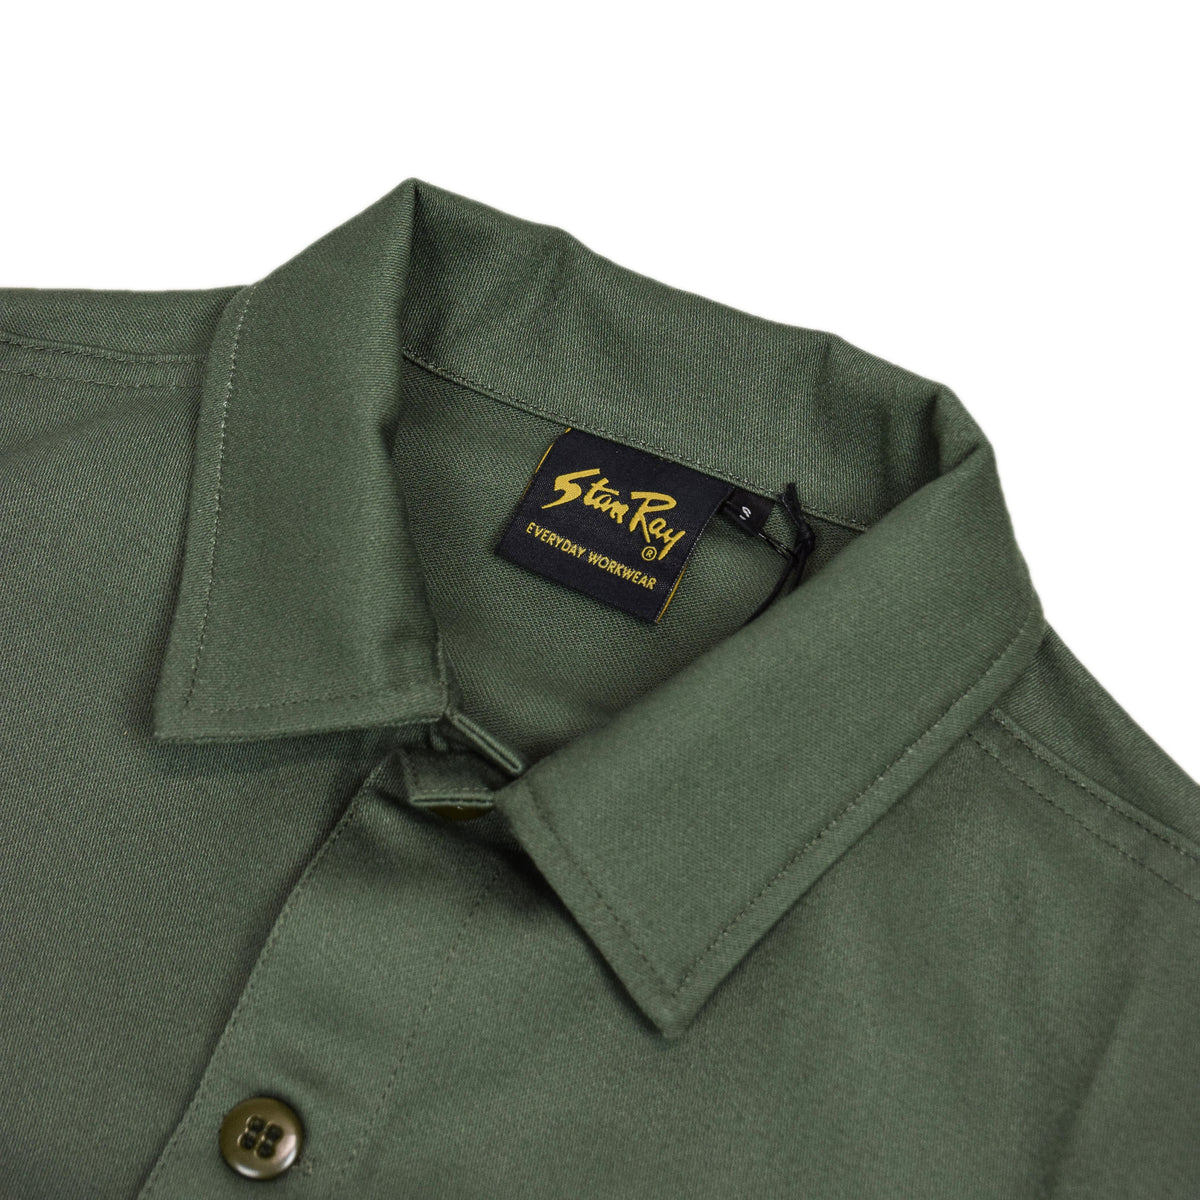 Stan Ray Olive Sateen CPO Overshirt Made In Portugal collar